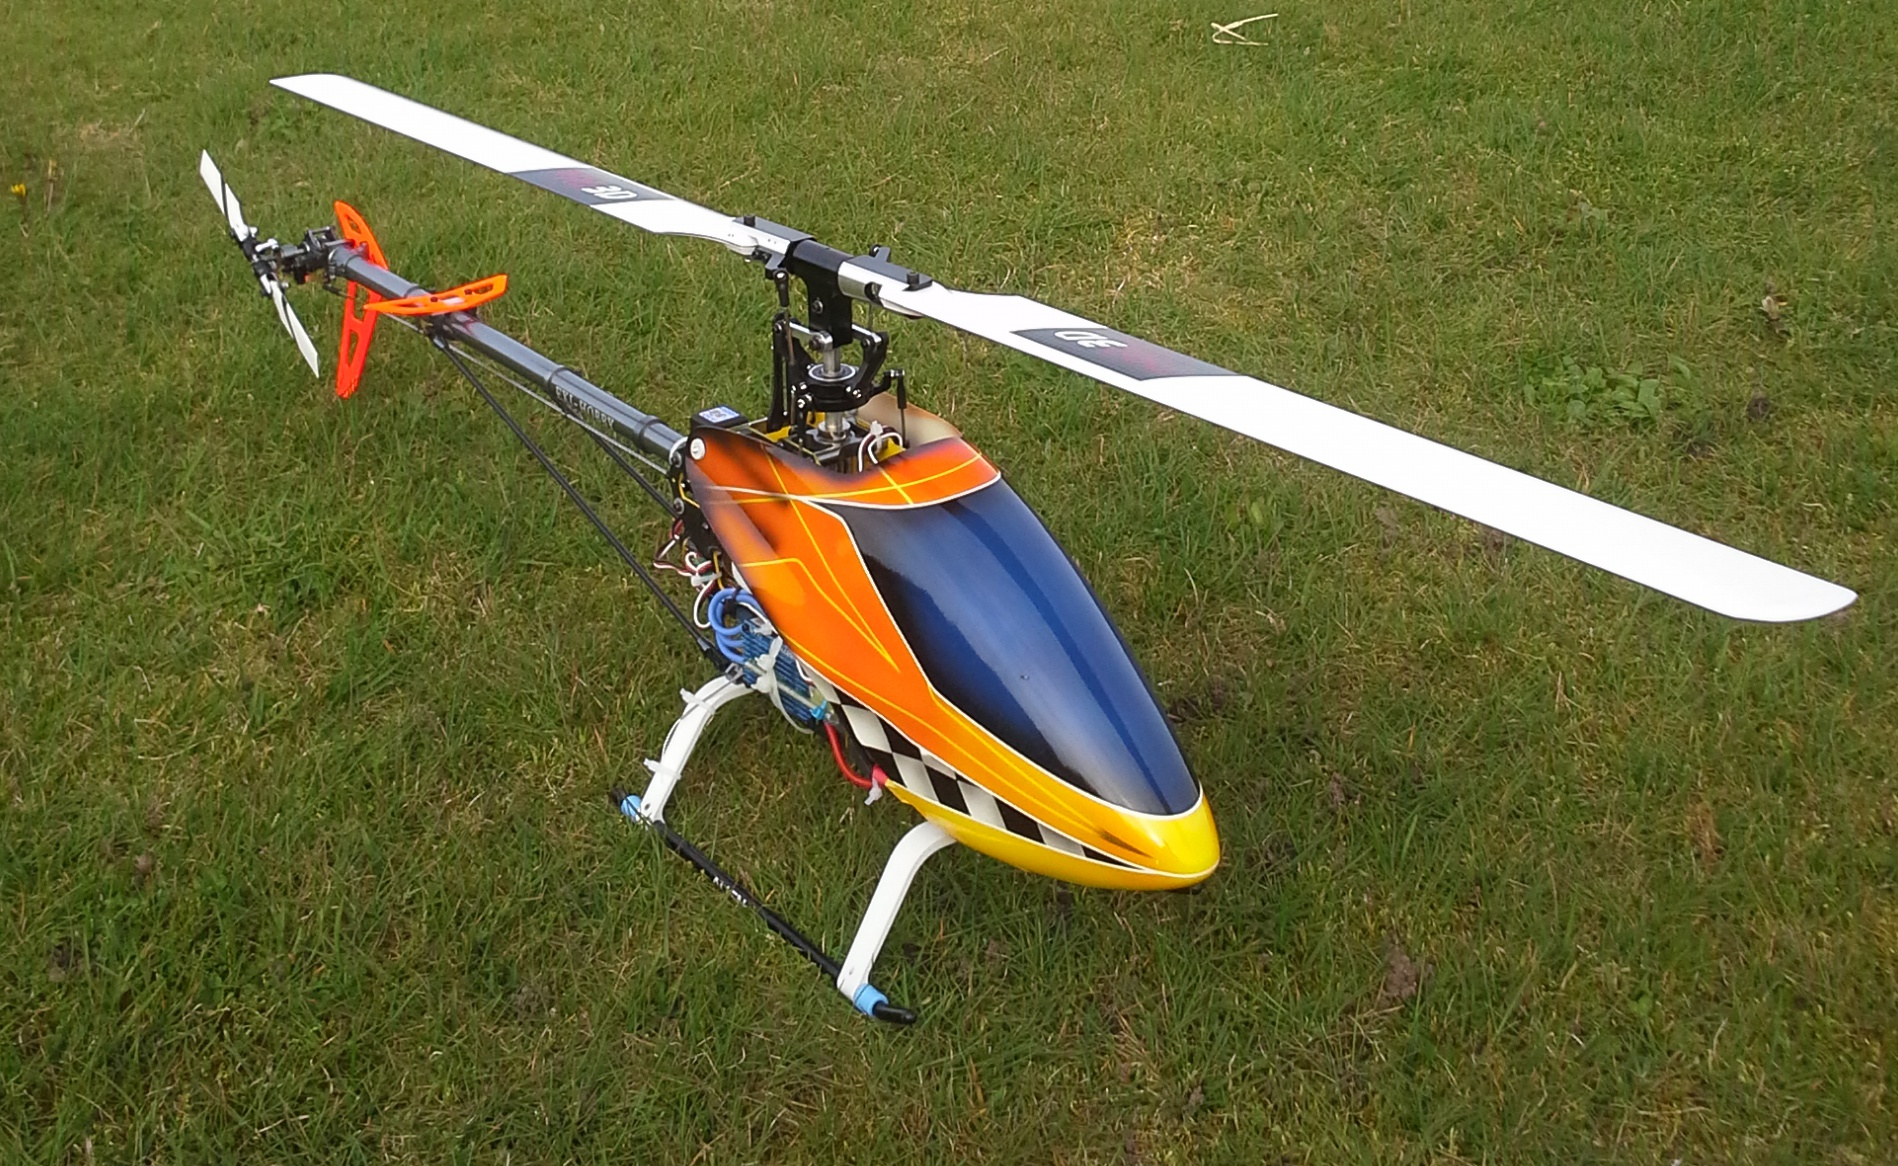 align rc helicopters with Index on Electric powered C 201 202 besides Syma X12 Nano Review as well Sab Goblin 570 Inkl  Rotorblaetter Gelb   Rot further I ytimg   vi mfpeN OXOcw 0 as well Trex 450l Dominator Super  bo.